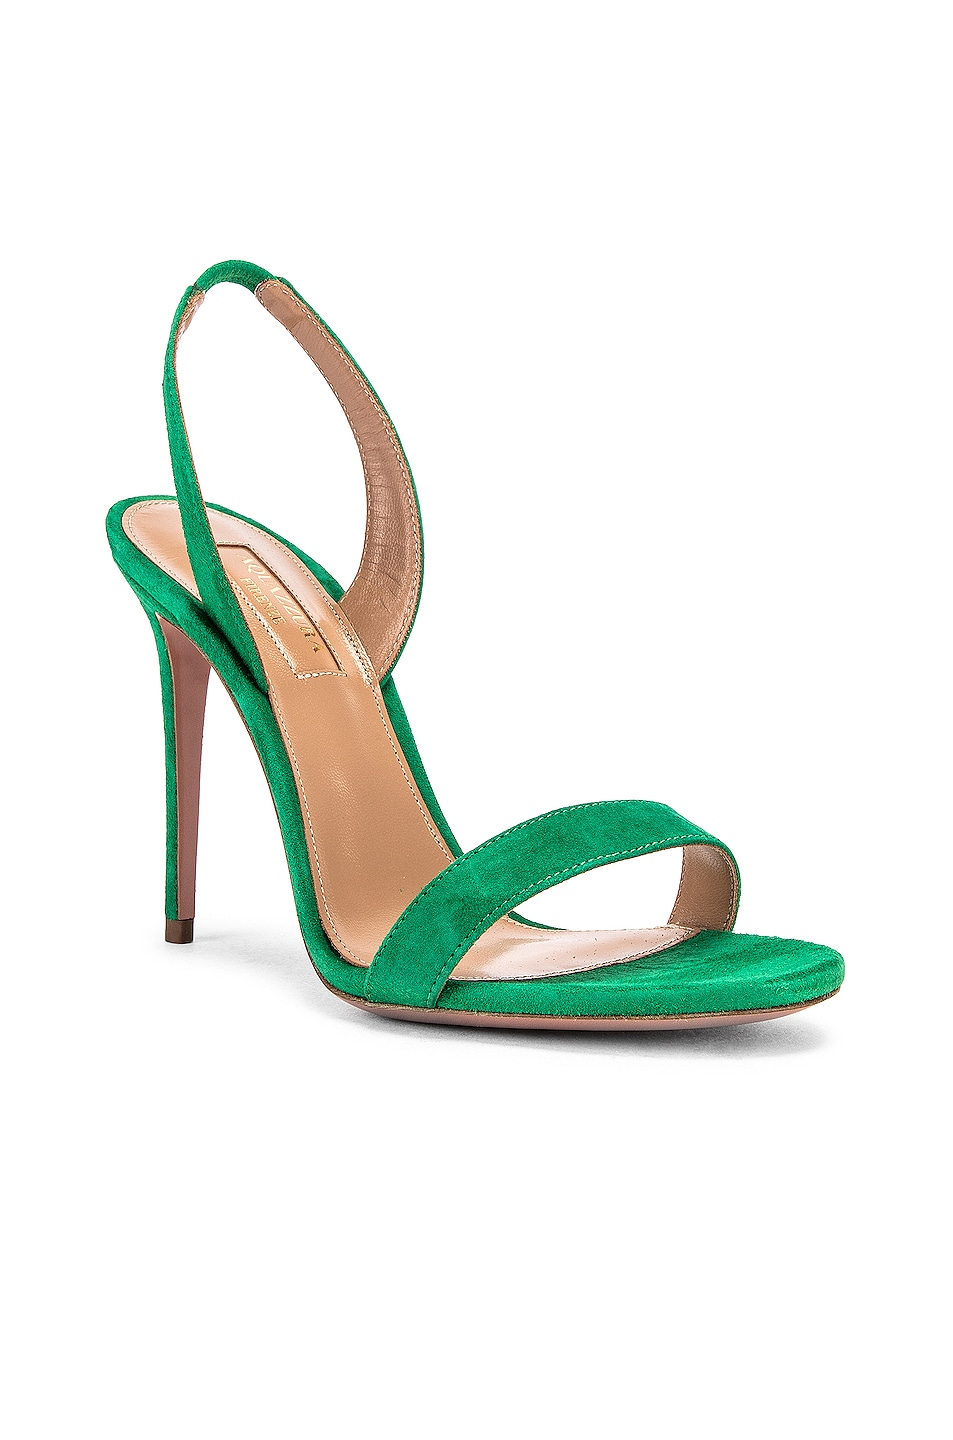 Image 2 of Aquazzura So Nude Suede 105 Sandal in Jungle Green